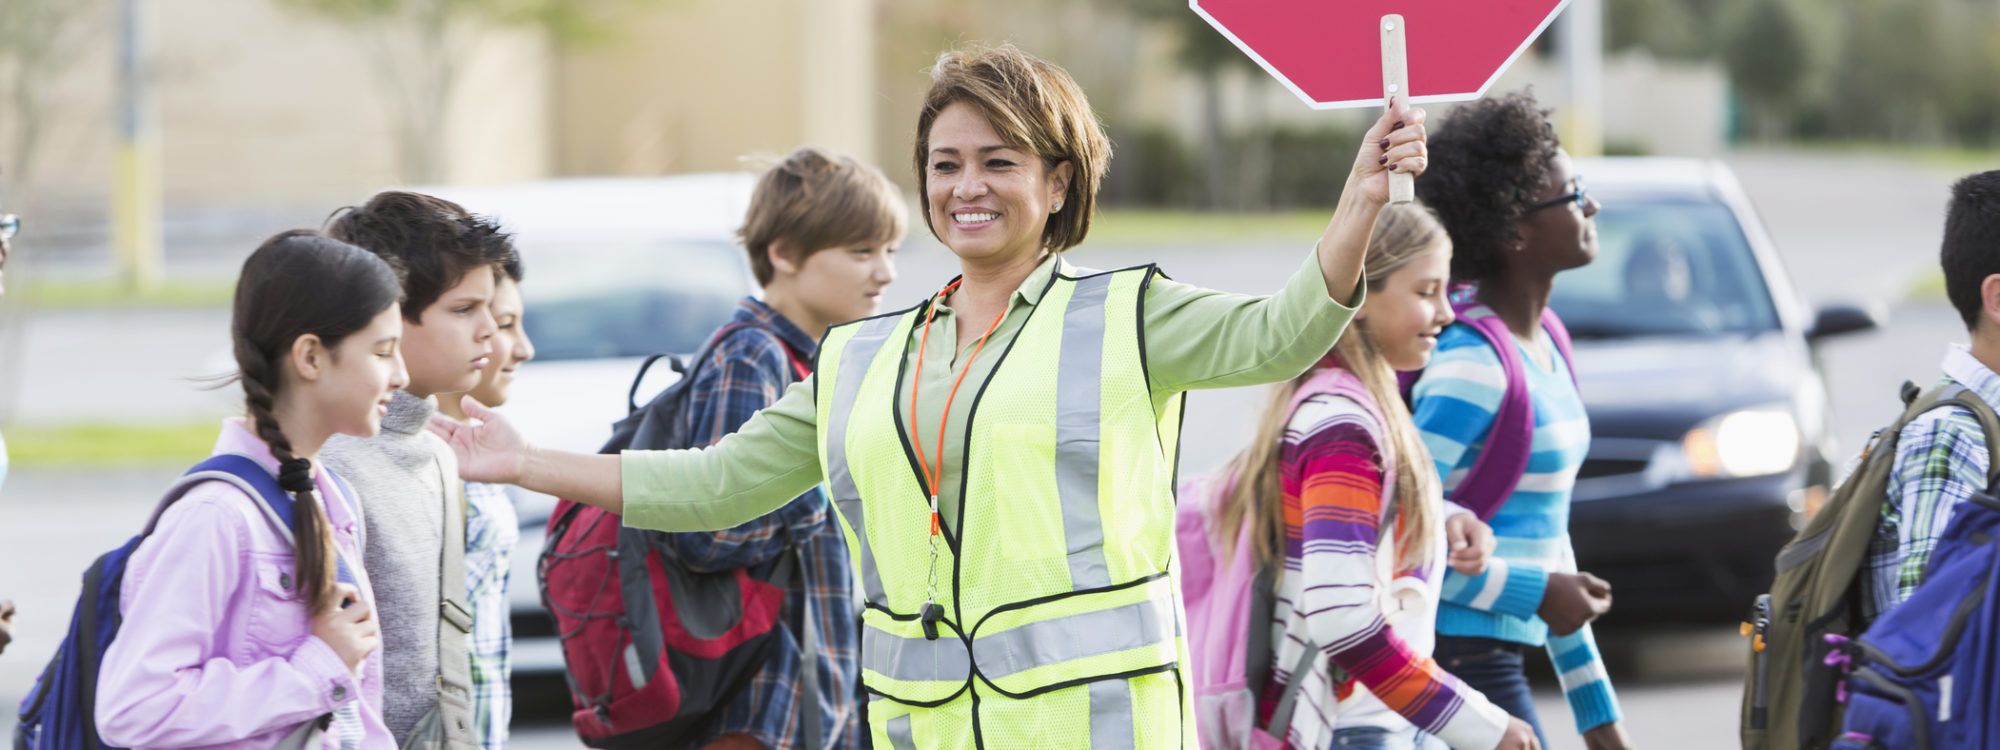 crossing guard and students